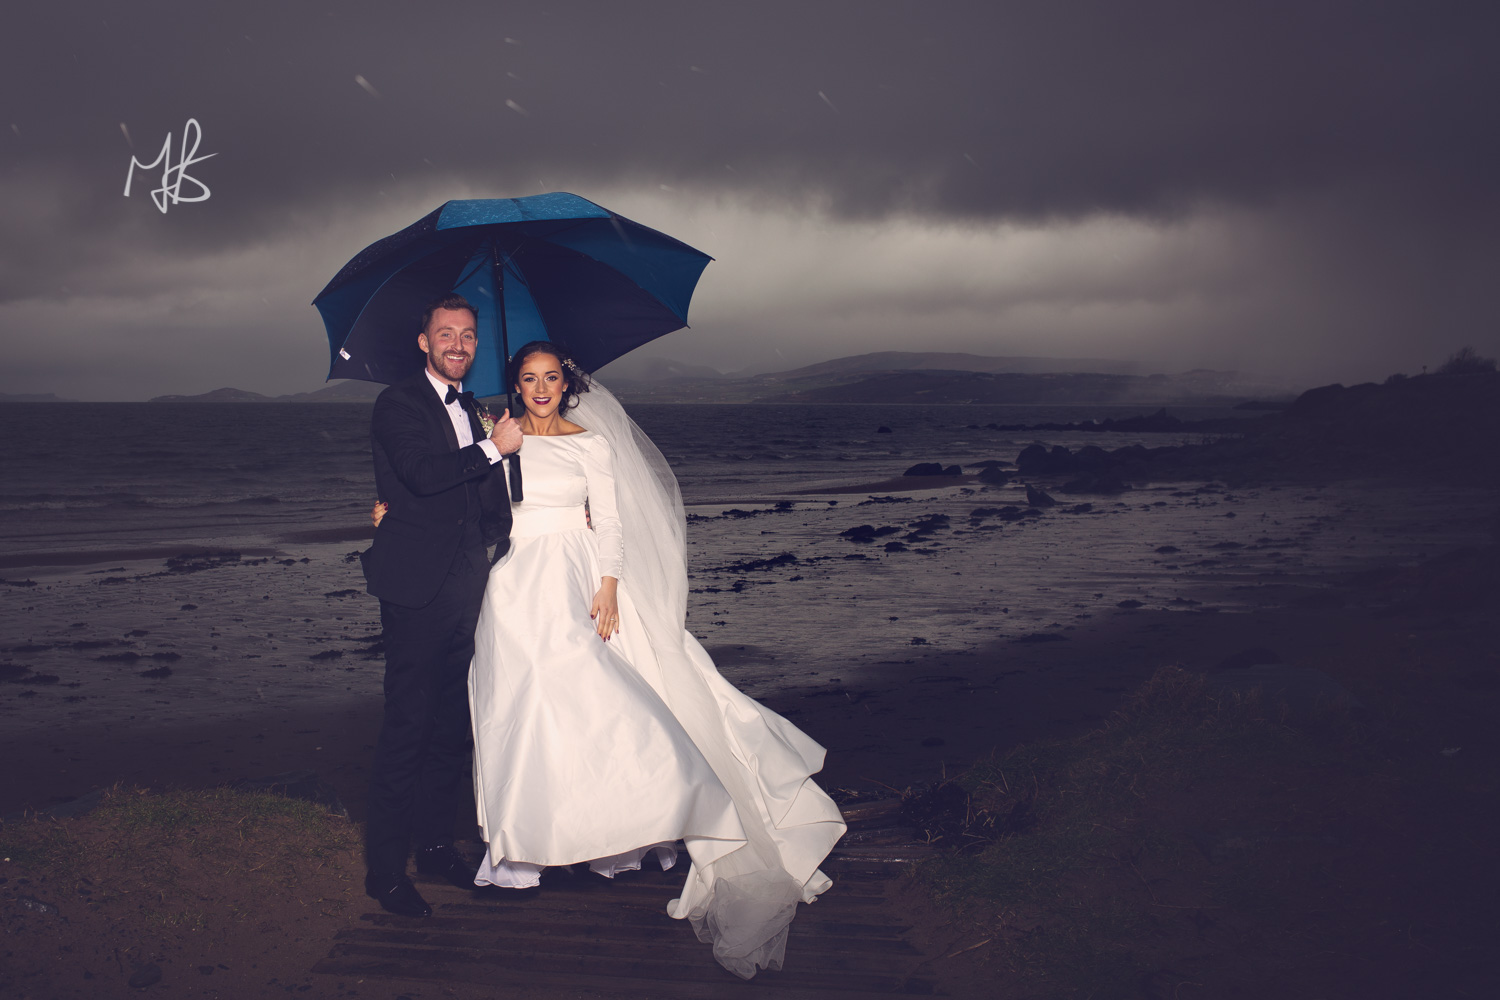 Mark_Barnes_Northern_Ireland_wedding_photographer_Innishowen_Gateway_Donegal_Wedding_photography-previews-319.jpg